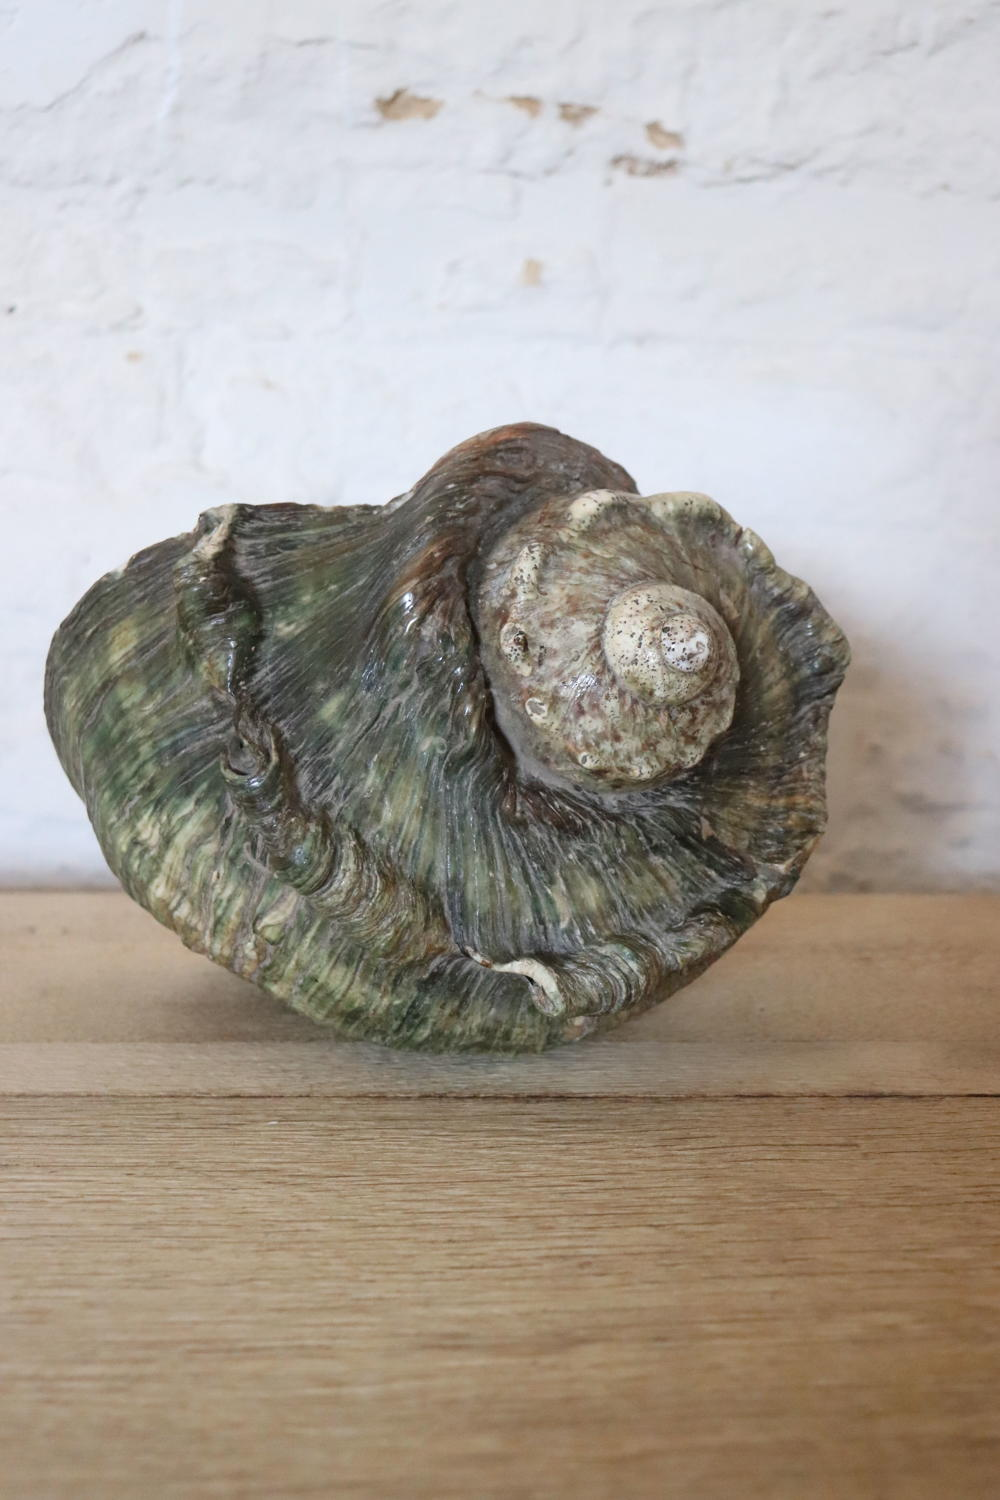 Large green conch shell